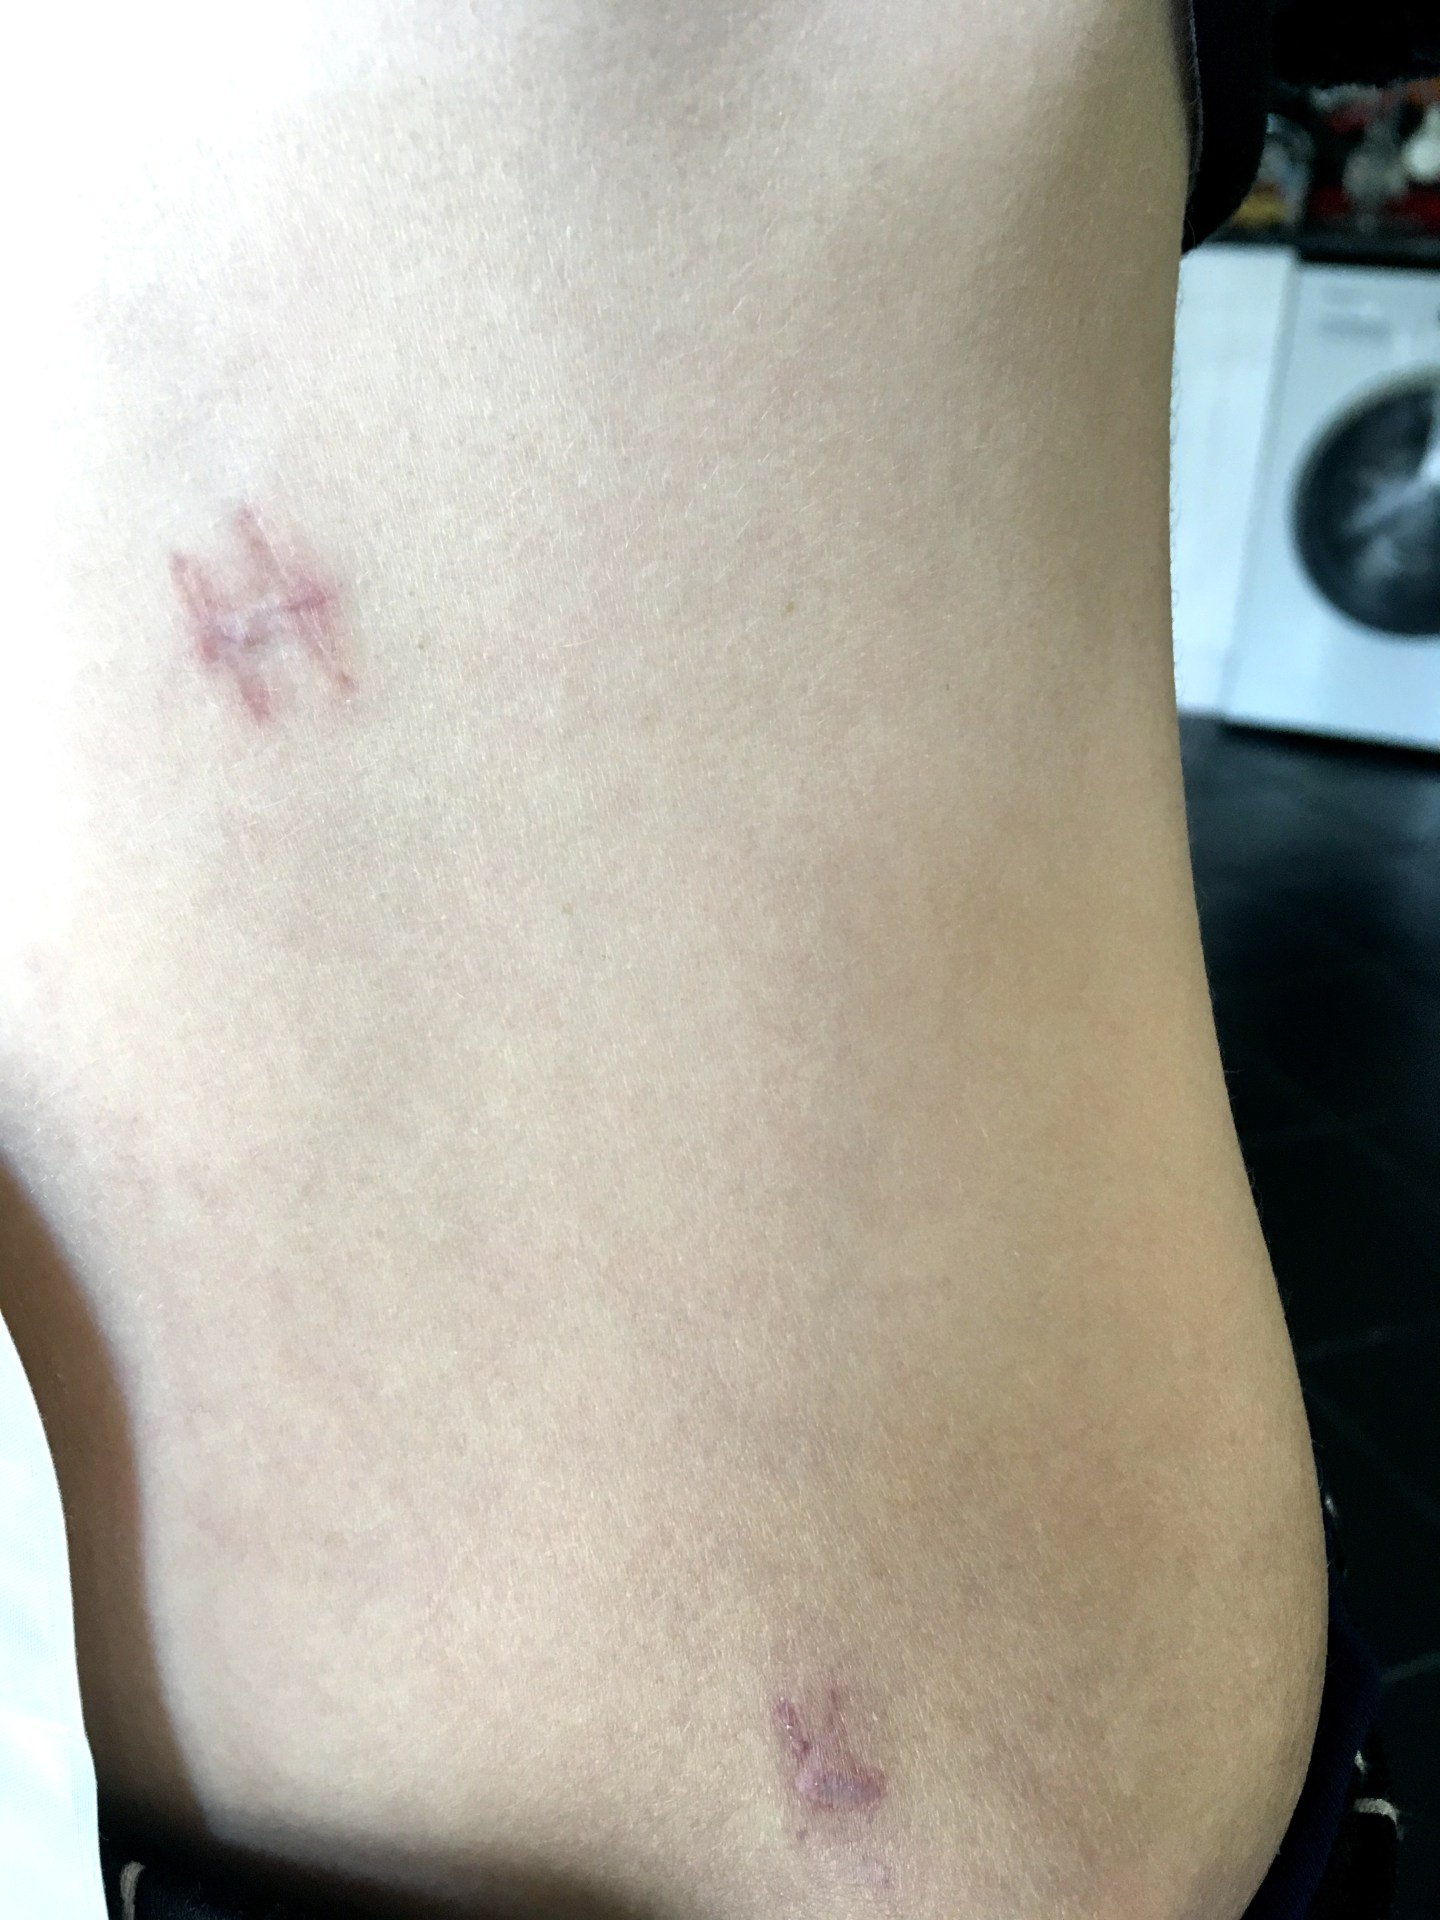 A photo of my abdomen showing the side of my bag and the scars from my EUA procedure. The scars appear to look like the letter H at the top and lower down the letter L.